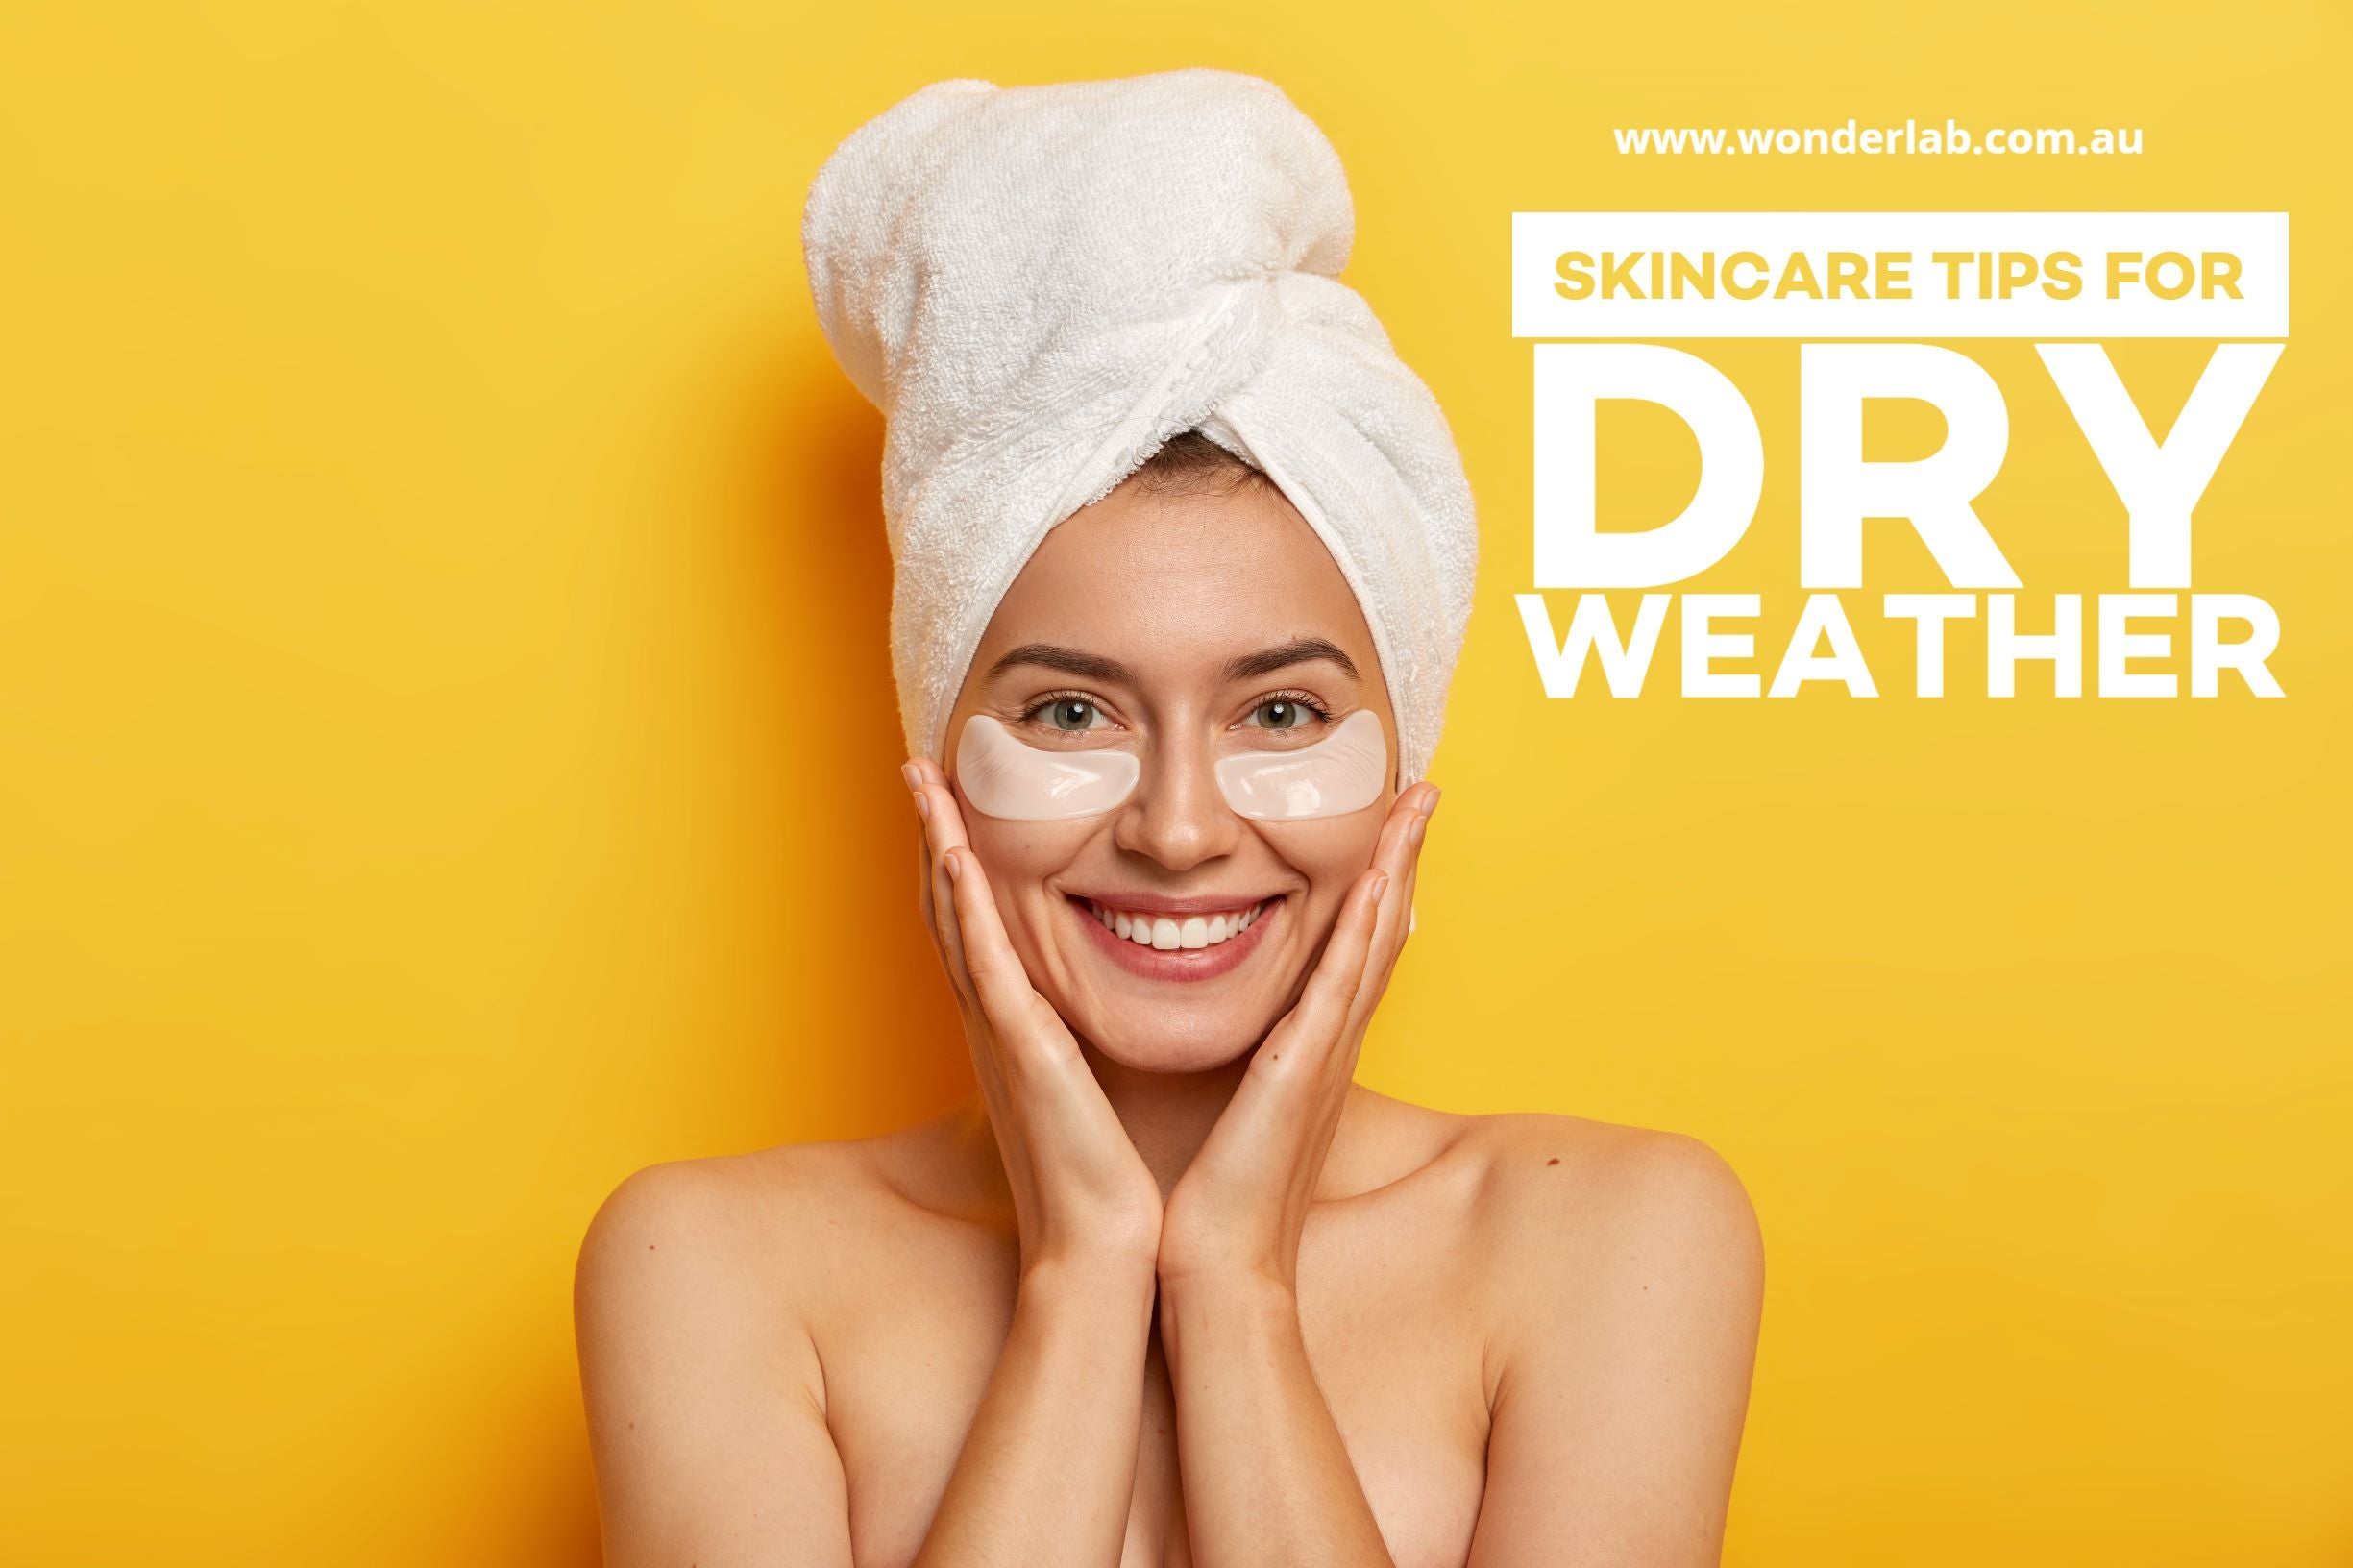 Skincare tips for dry weather